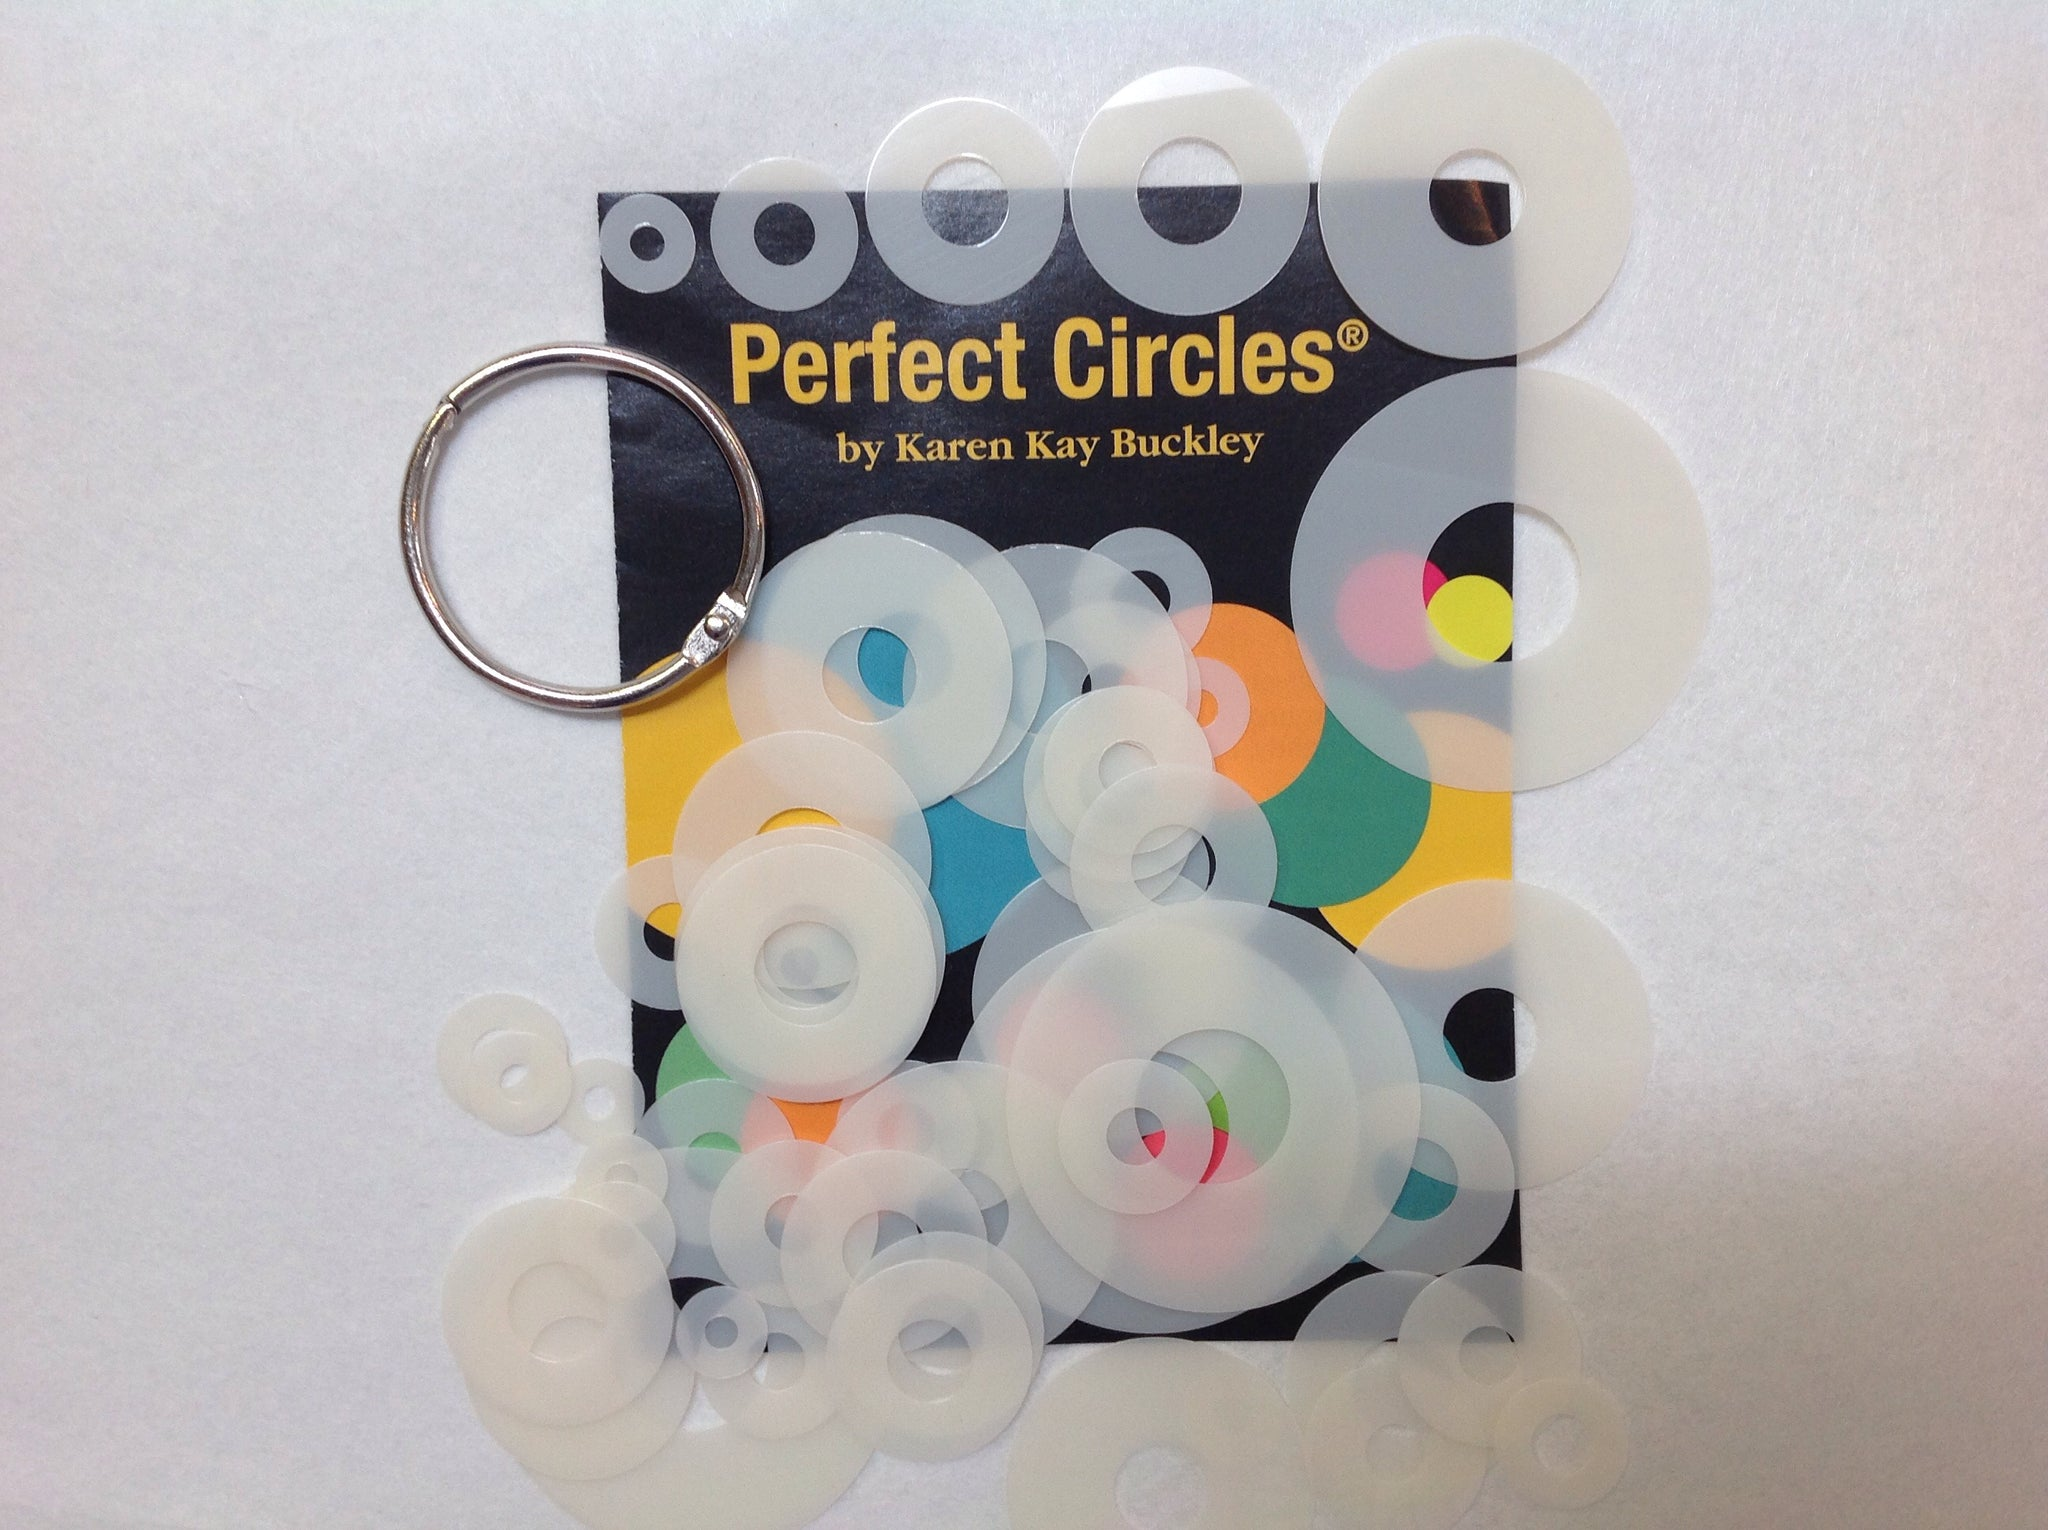 Karen Kay Buckley's - Perfect Circles